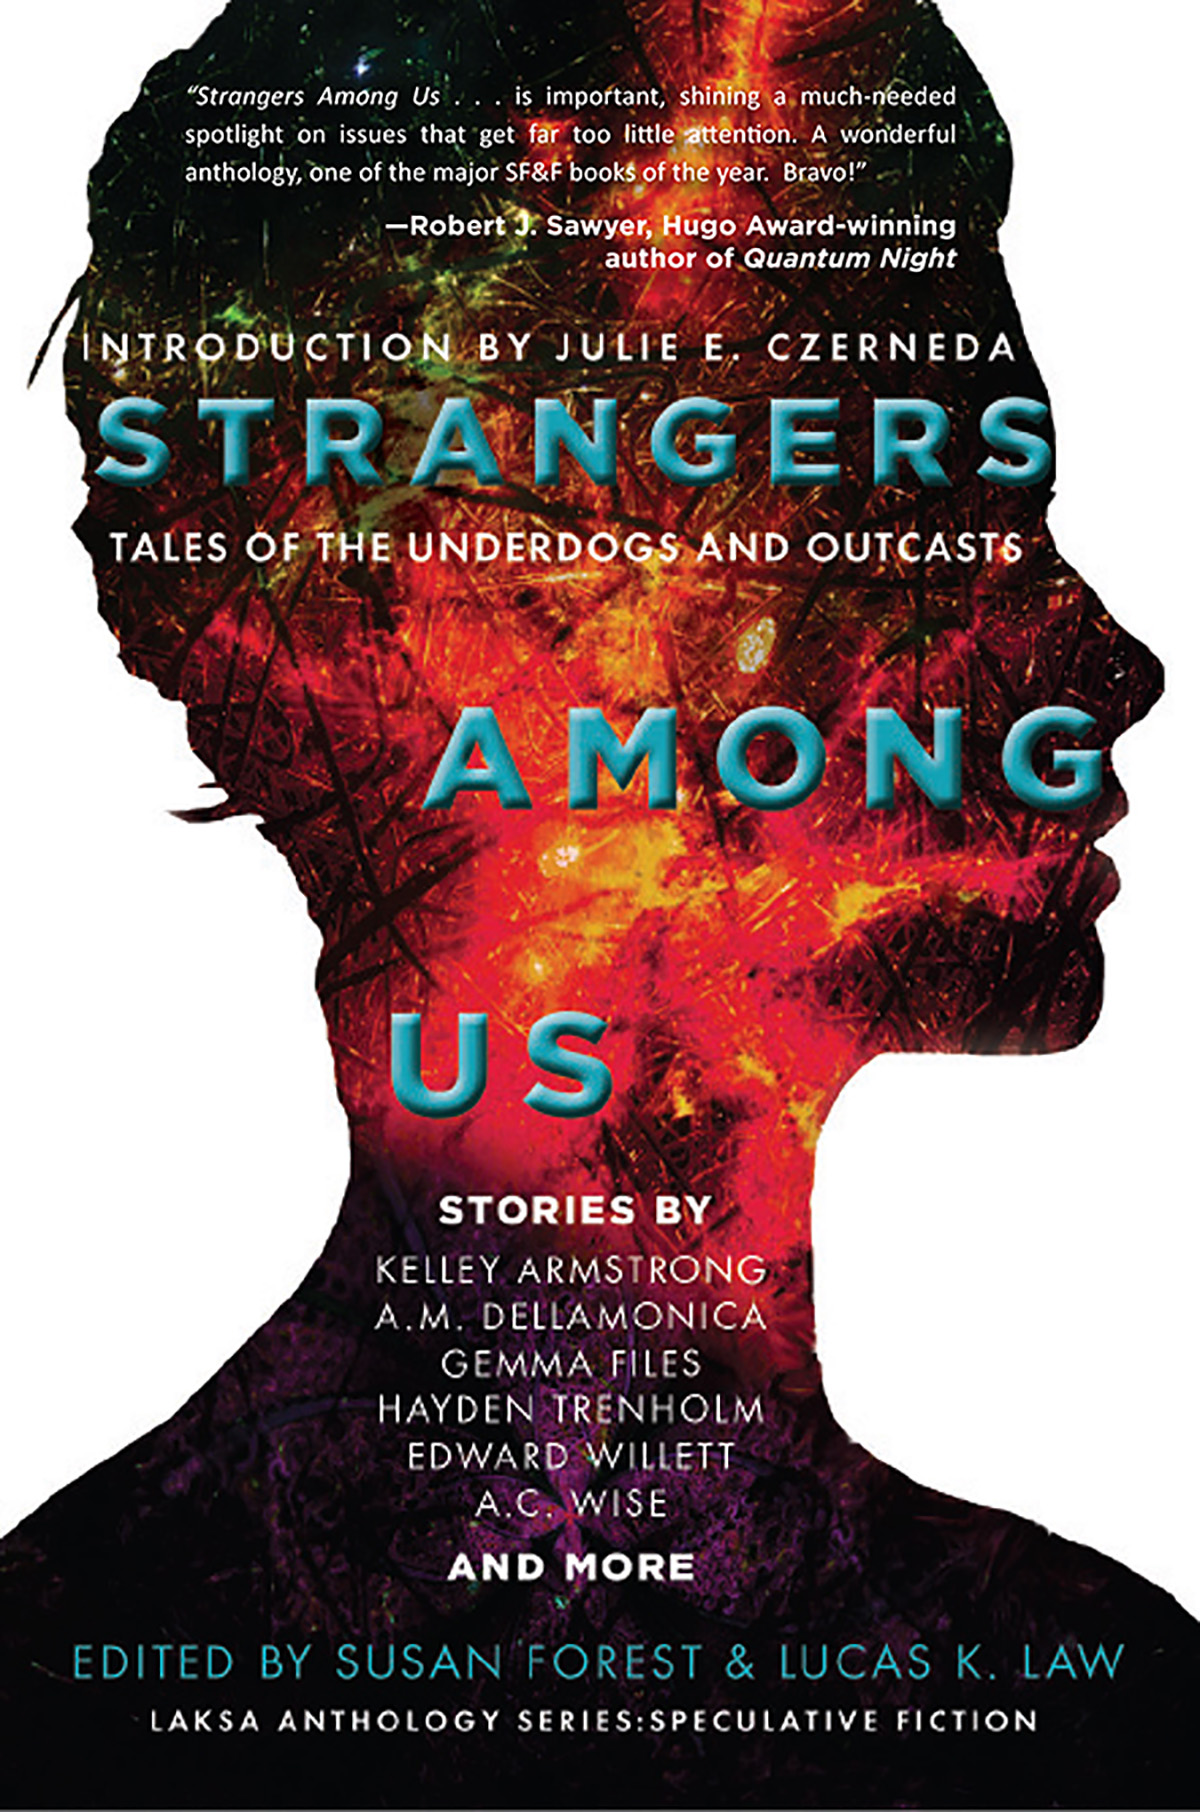 Susan Forest & Lucas K. Law - Strangers Among Us - Tales of the Underdogs and Outcasts